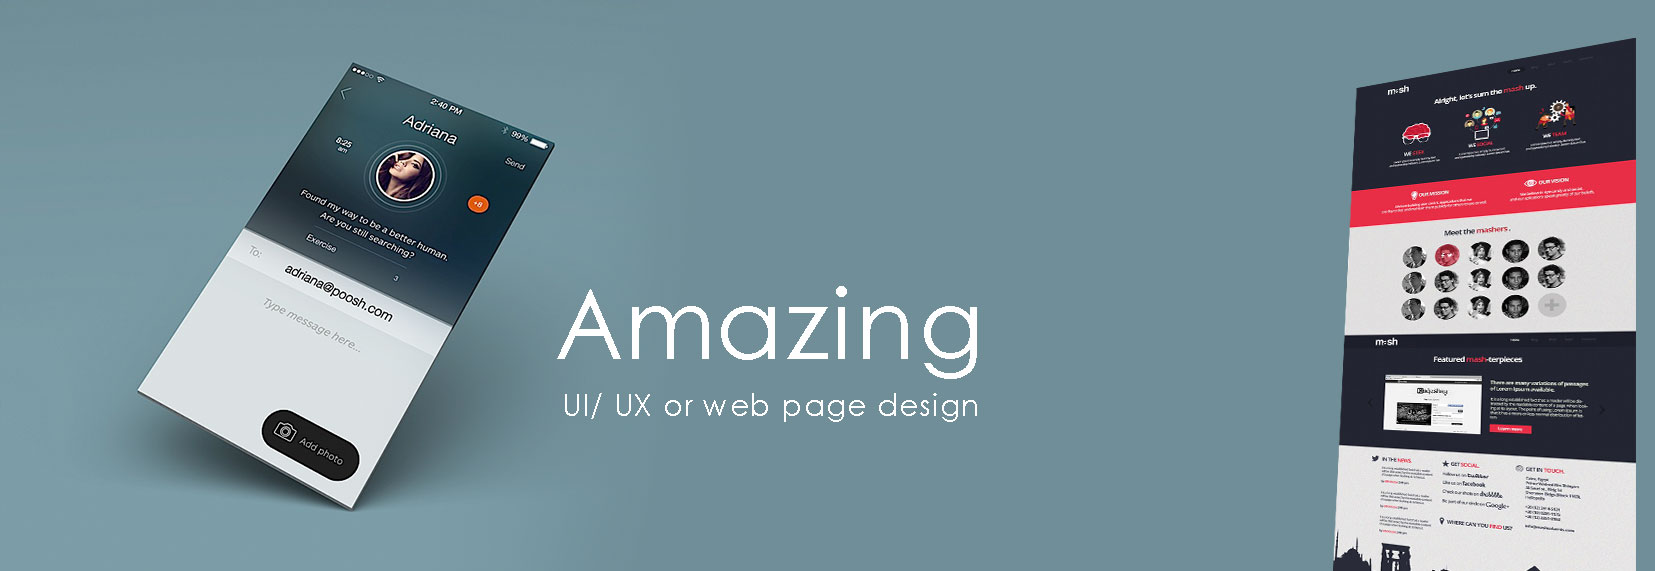 Amazing UI/ UX or web page design